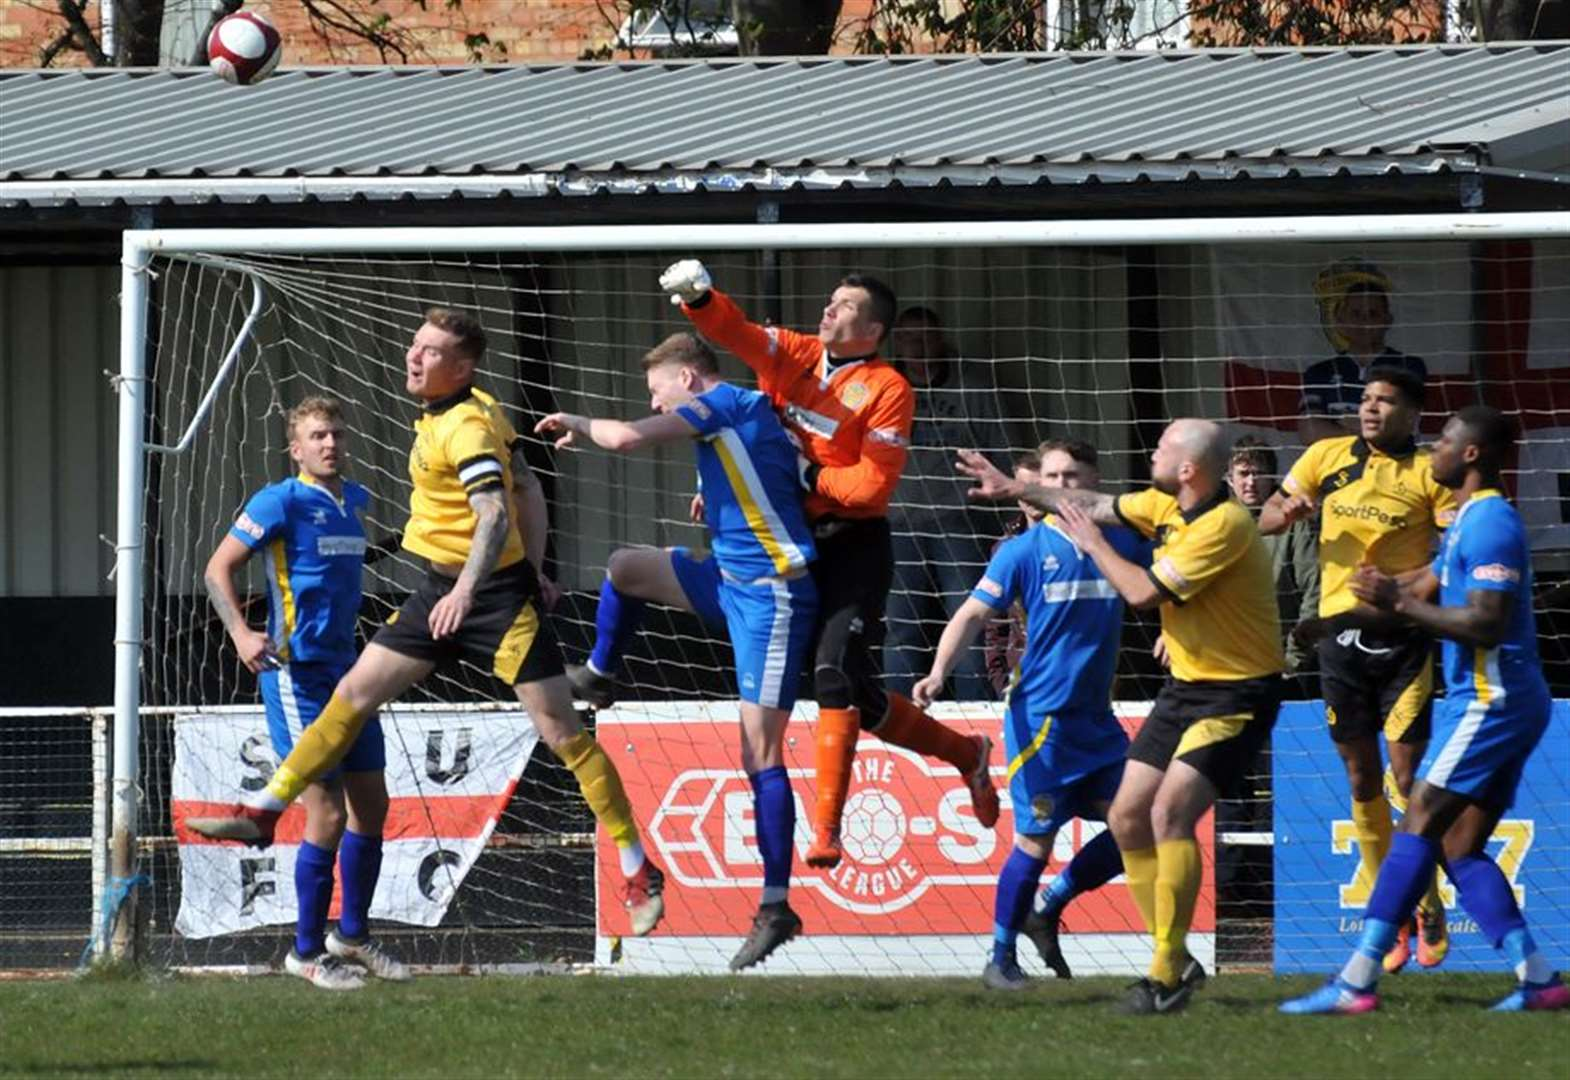 FOOTBALL: Tulips keeper staying for 2019/20 season